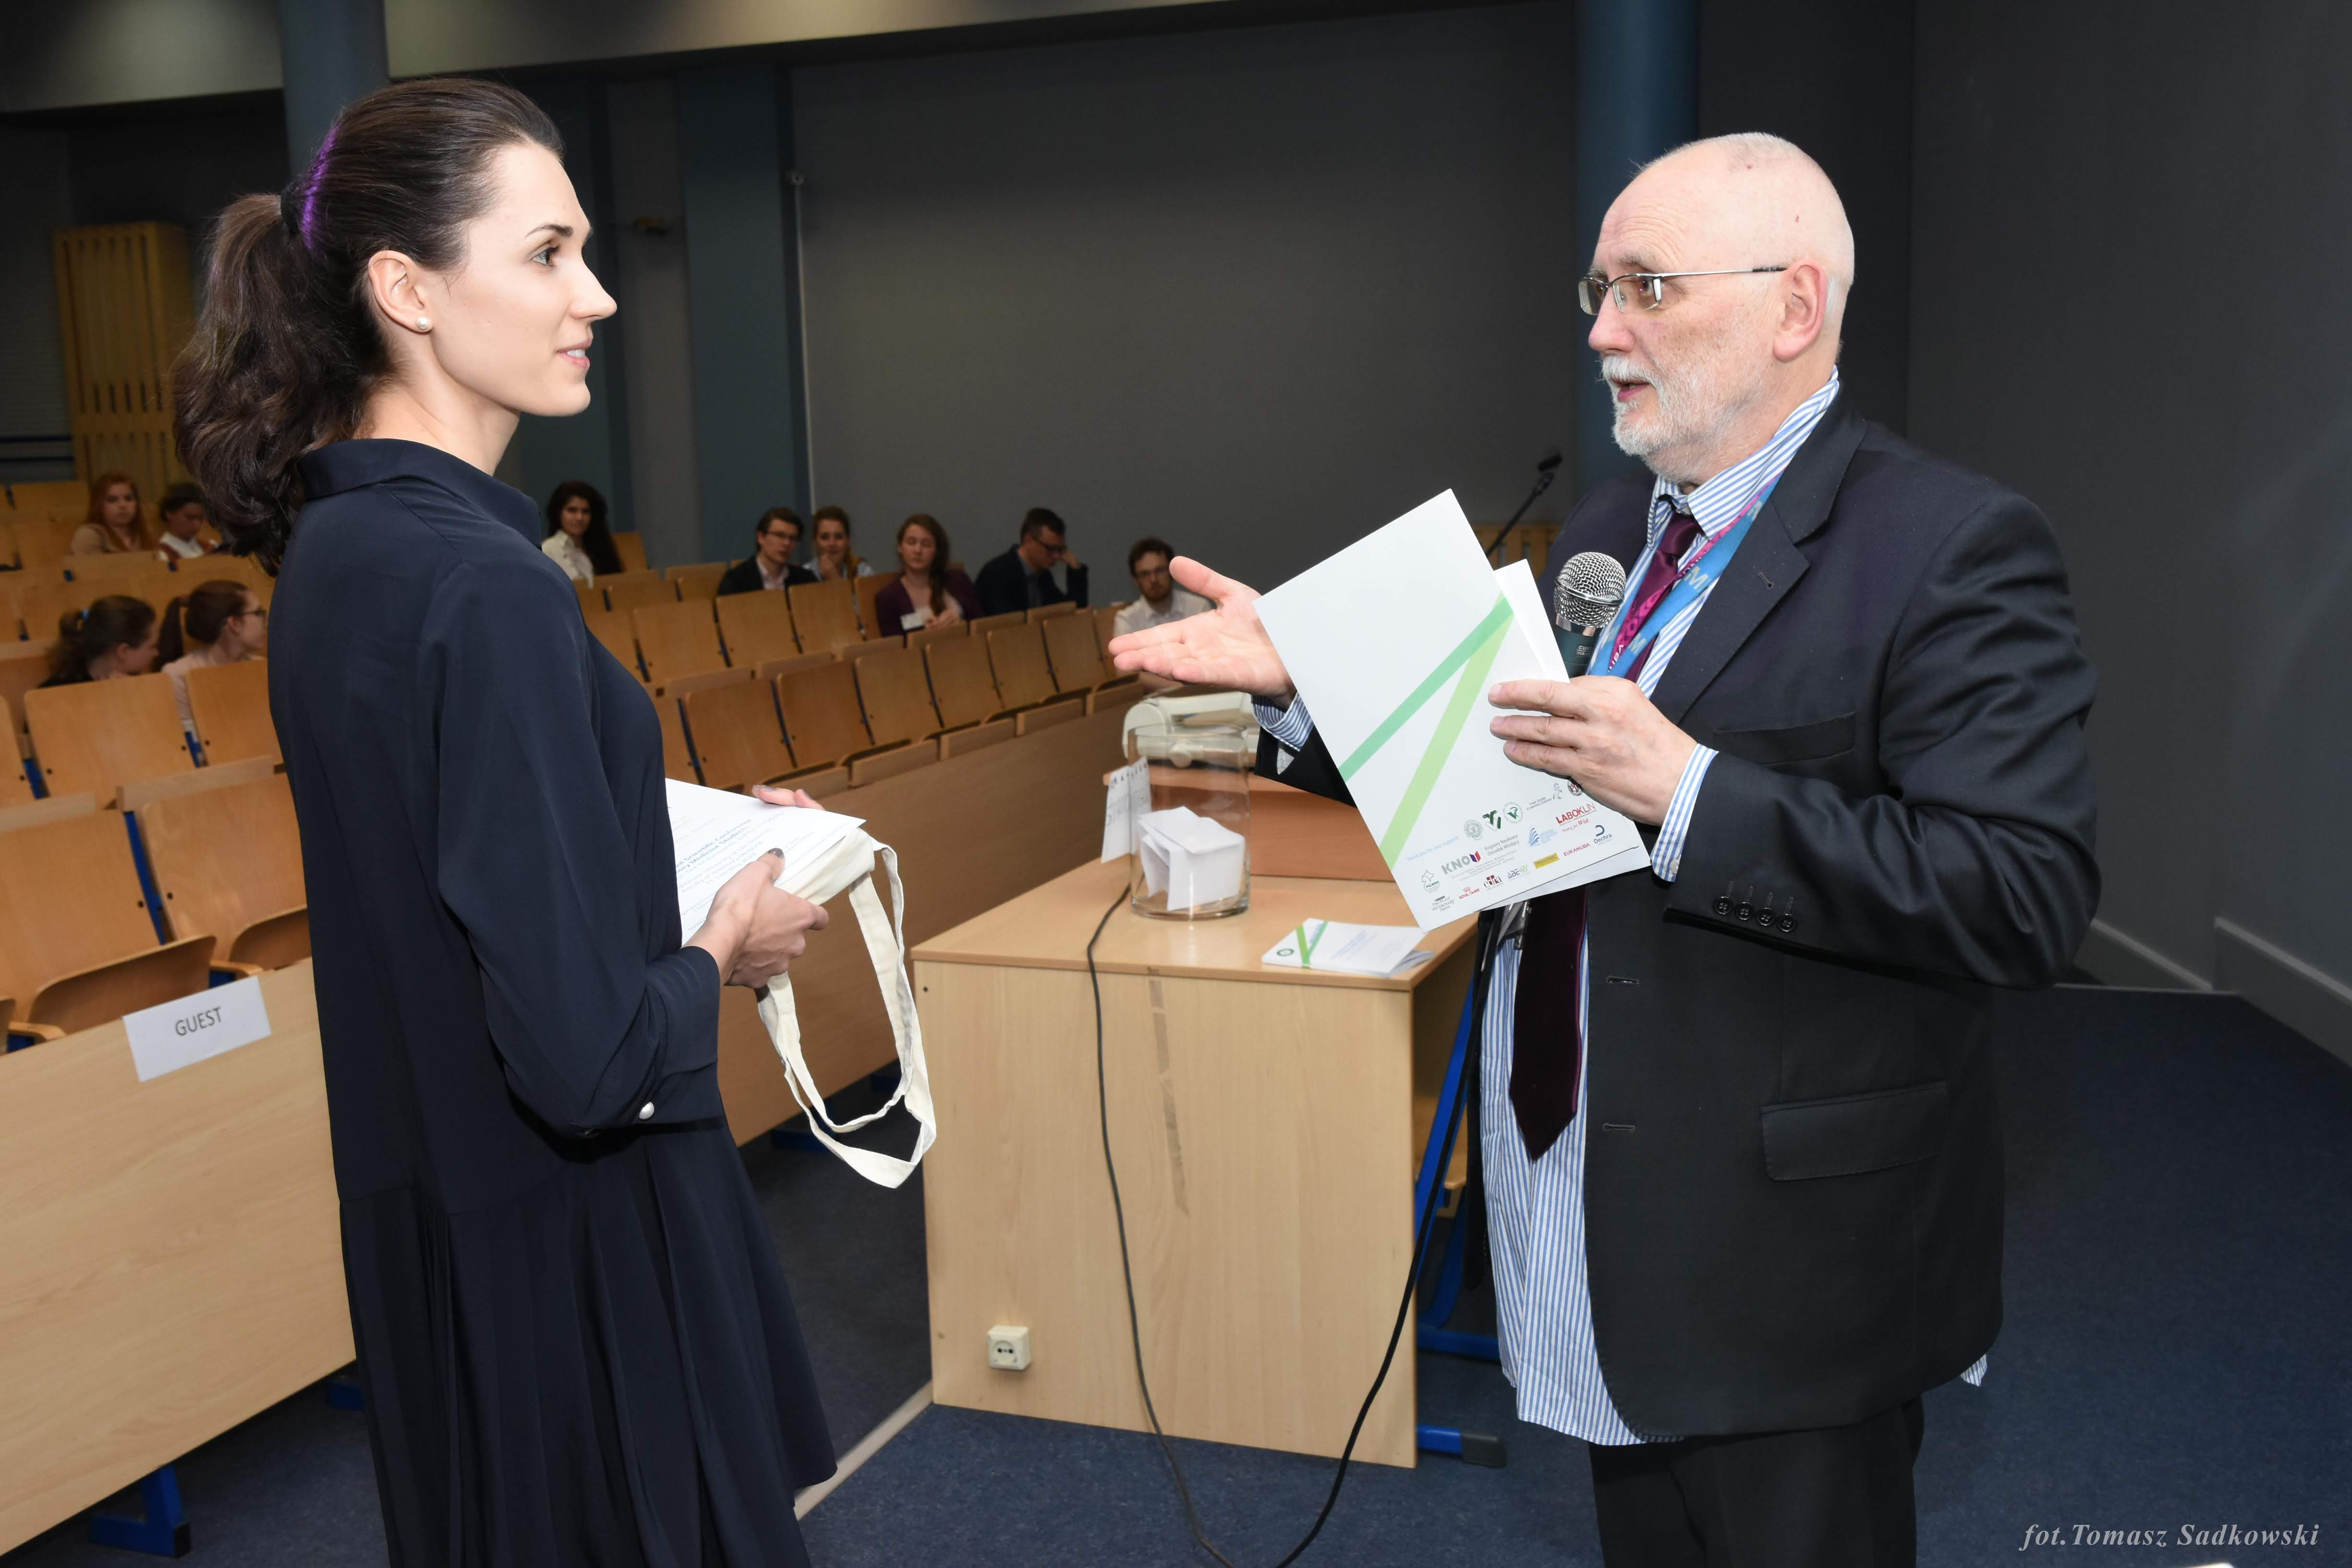 Magdalena Sochoń awarded in small animals session